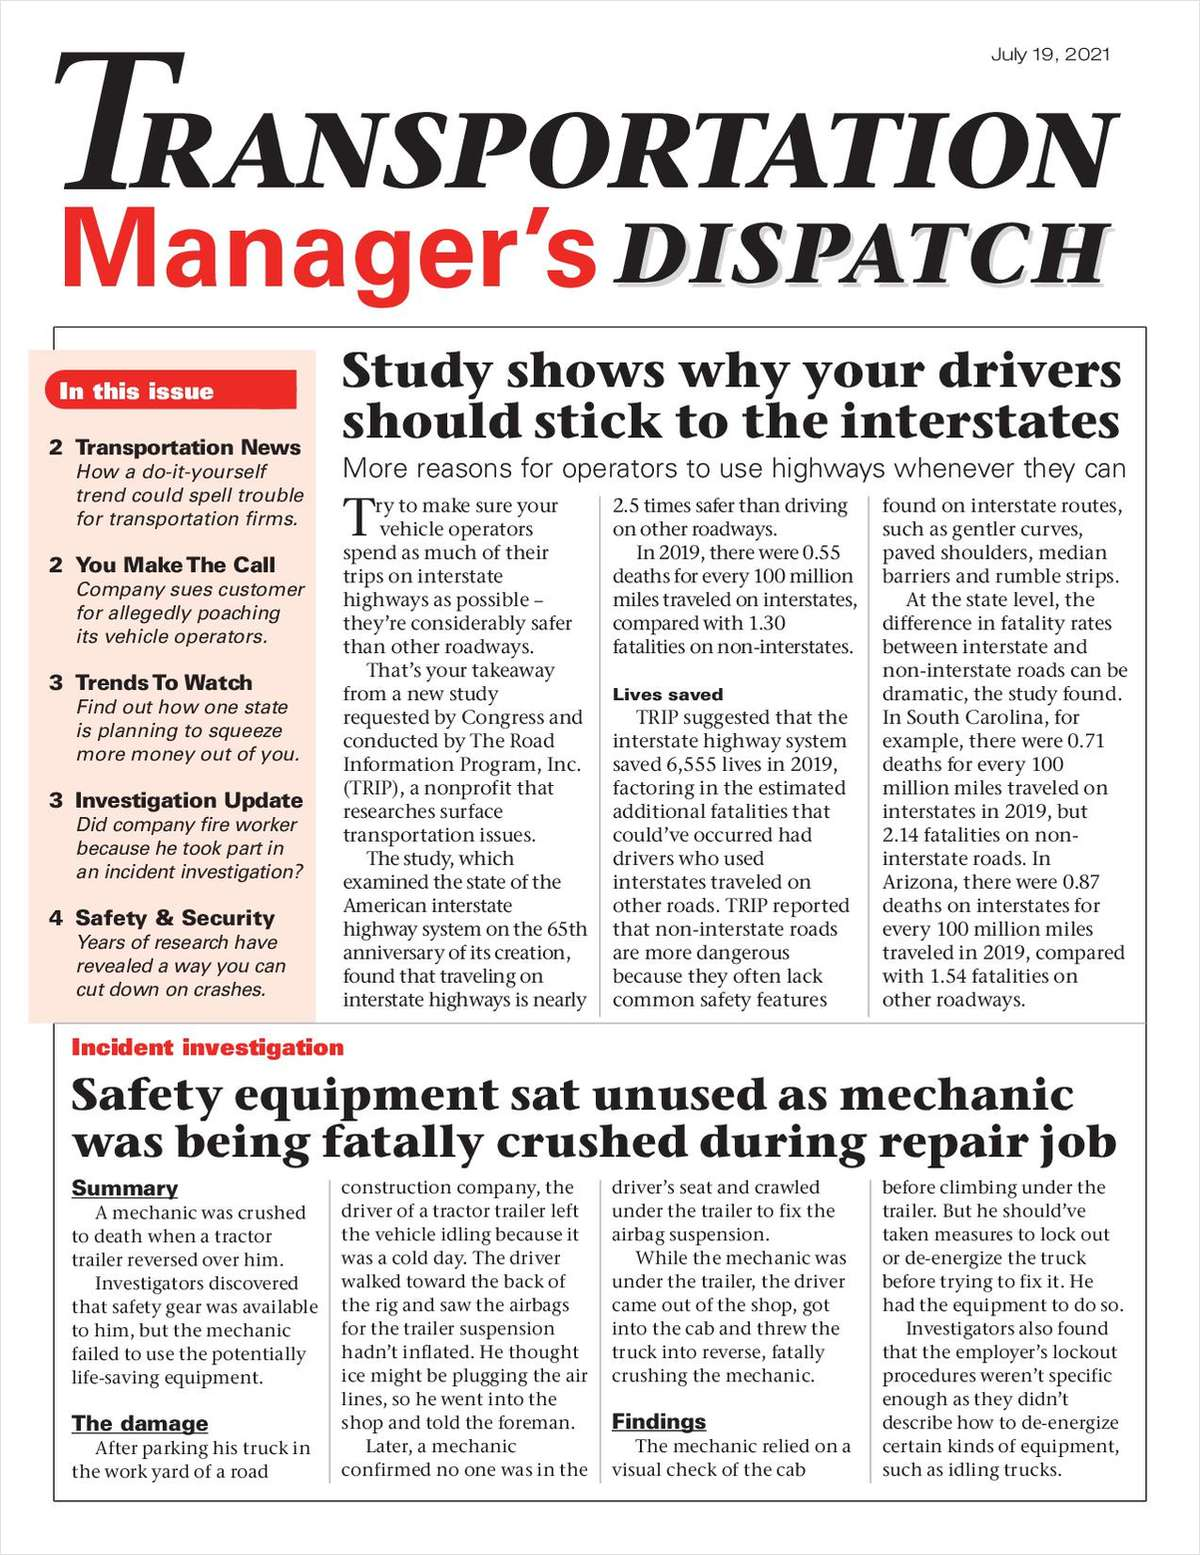 Transportation Manager's Dispatch Newsletter: July 19 Issue